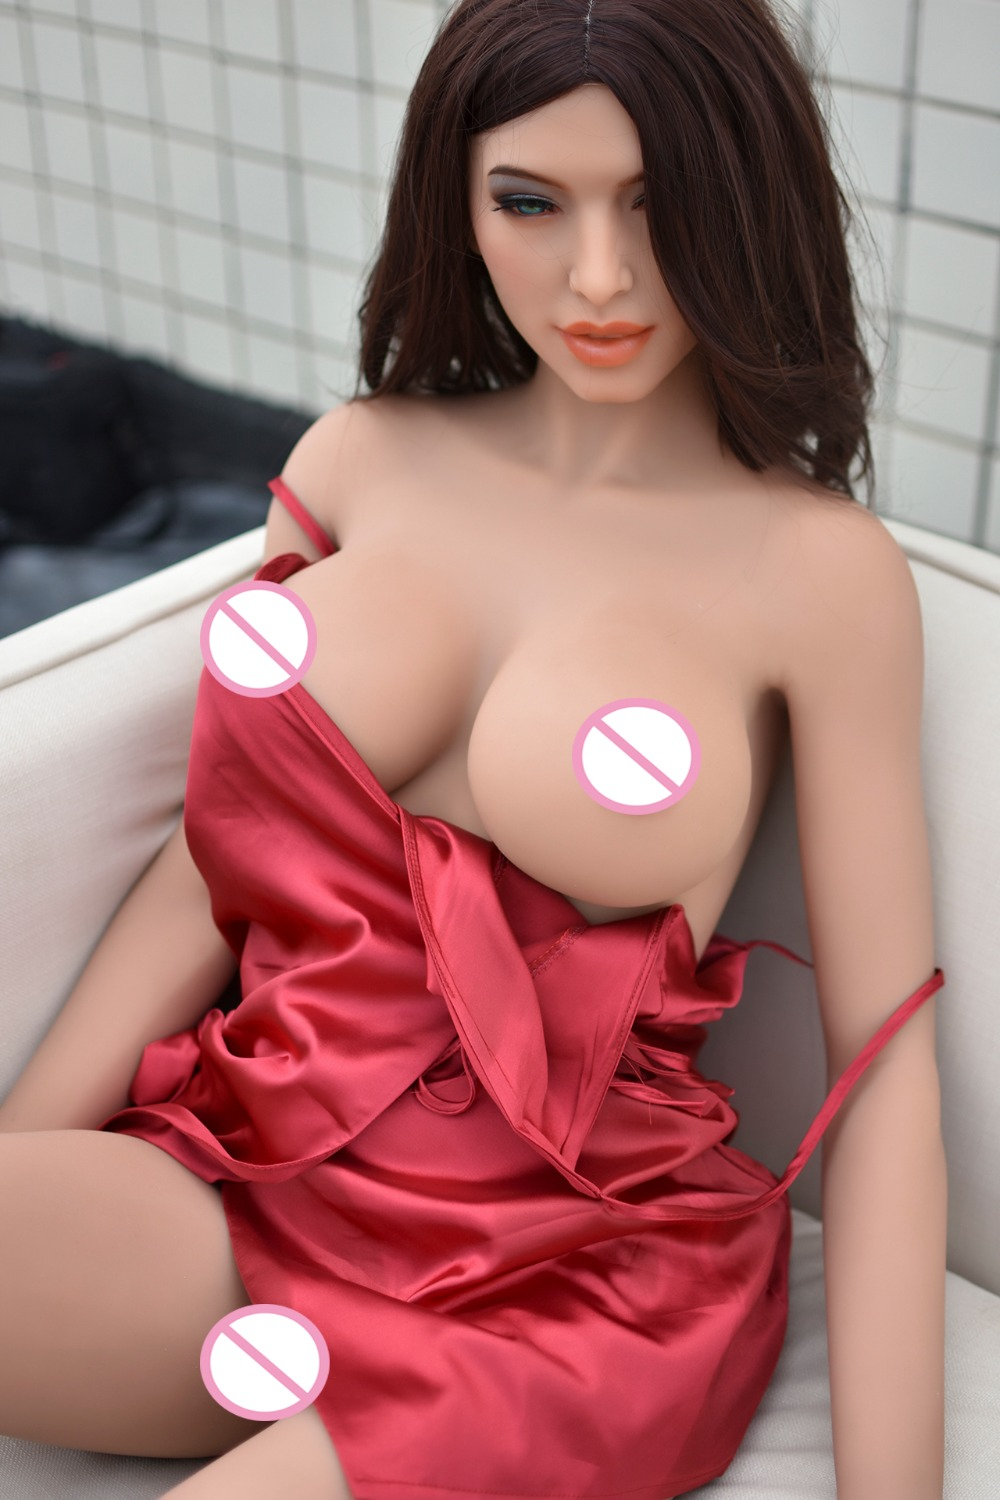 165cm real Silicone Sex Dolls For Men Top Quality Big Breast Lifelike Real Vagina Oral Anal Love Doll Adult Sexy doll книжка магнит с днём рождения с пожеланиями и афоризмами 45х60 мм 1139069